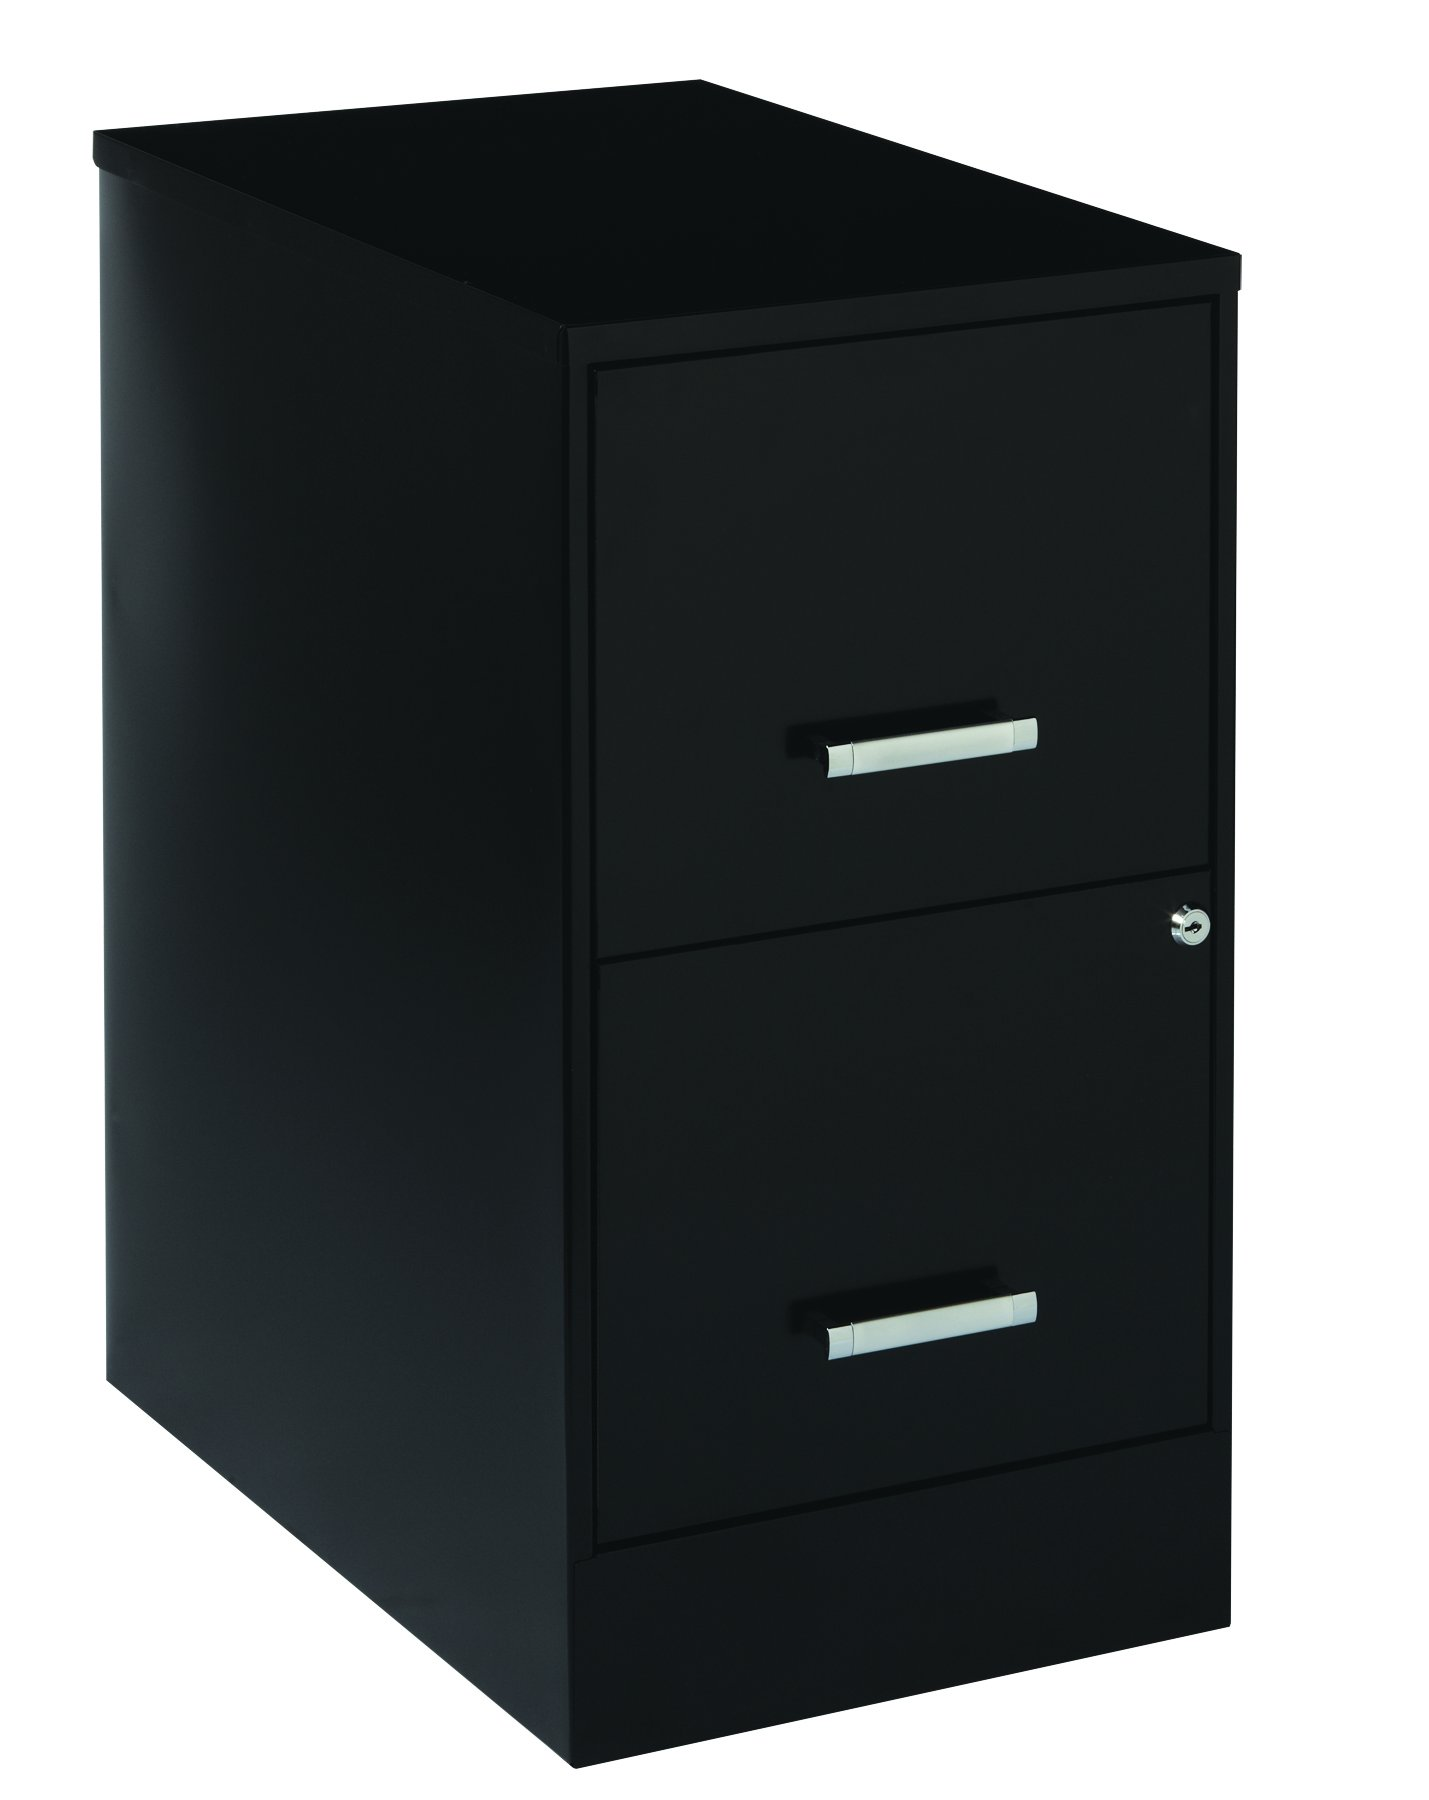 Office Dimensions 22'' Deep 2 Drawer Metal SOHO Vertical File Cabinet, Inch, Black by Office Dimensions